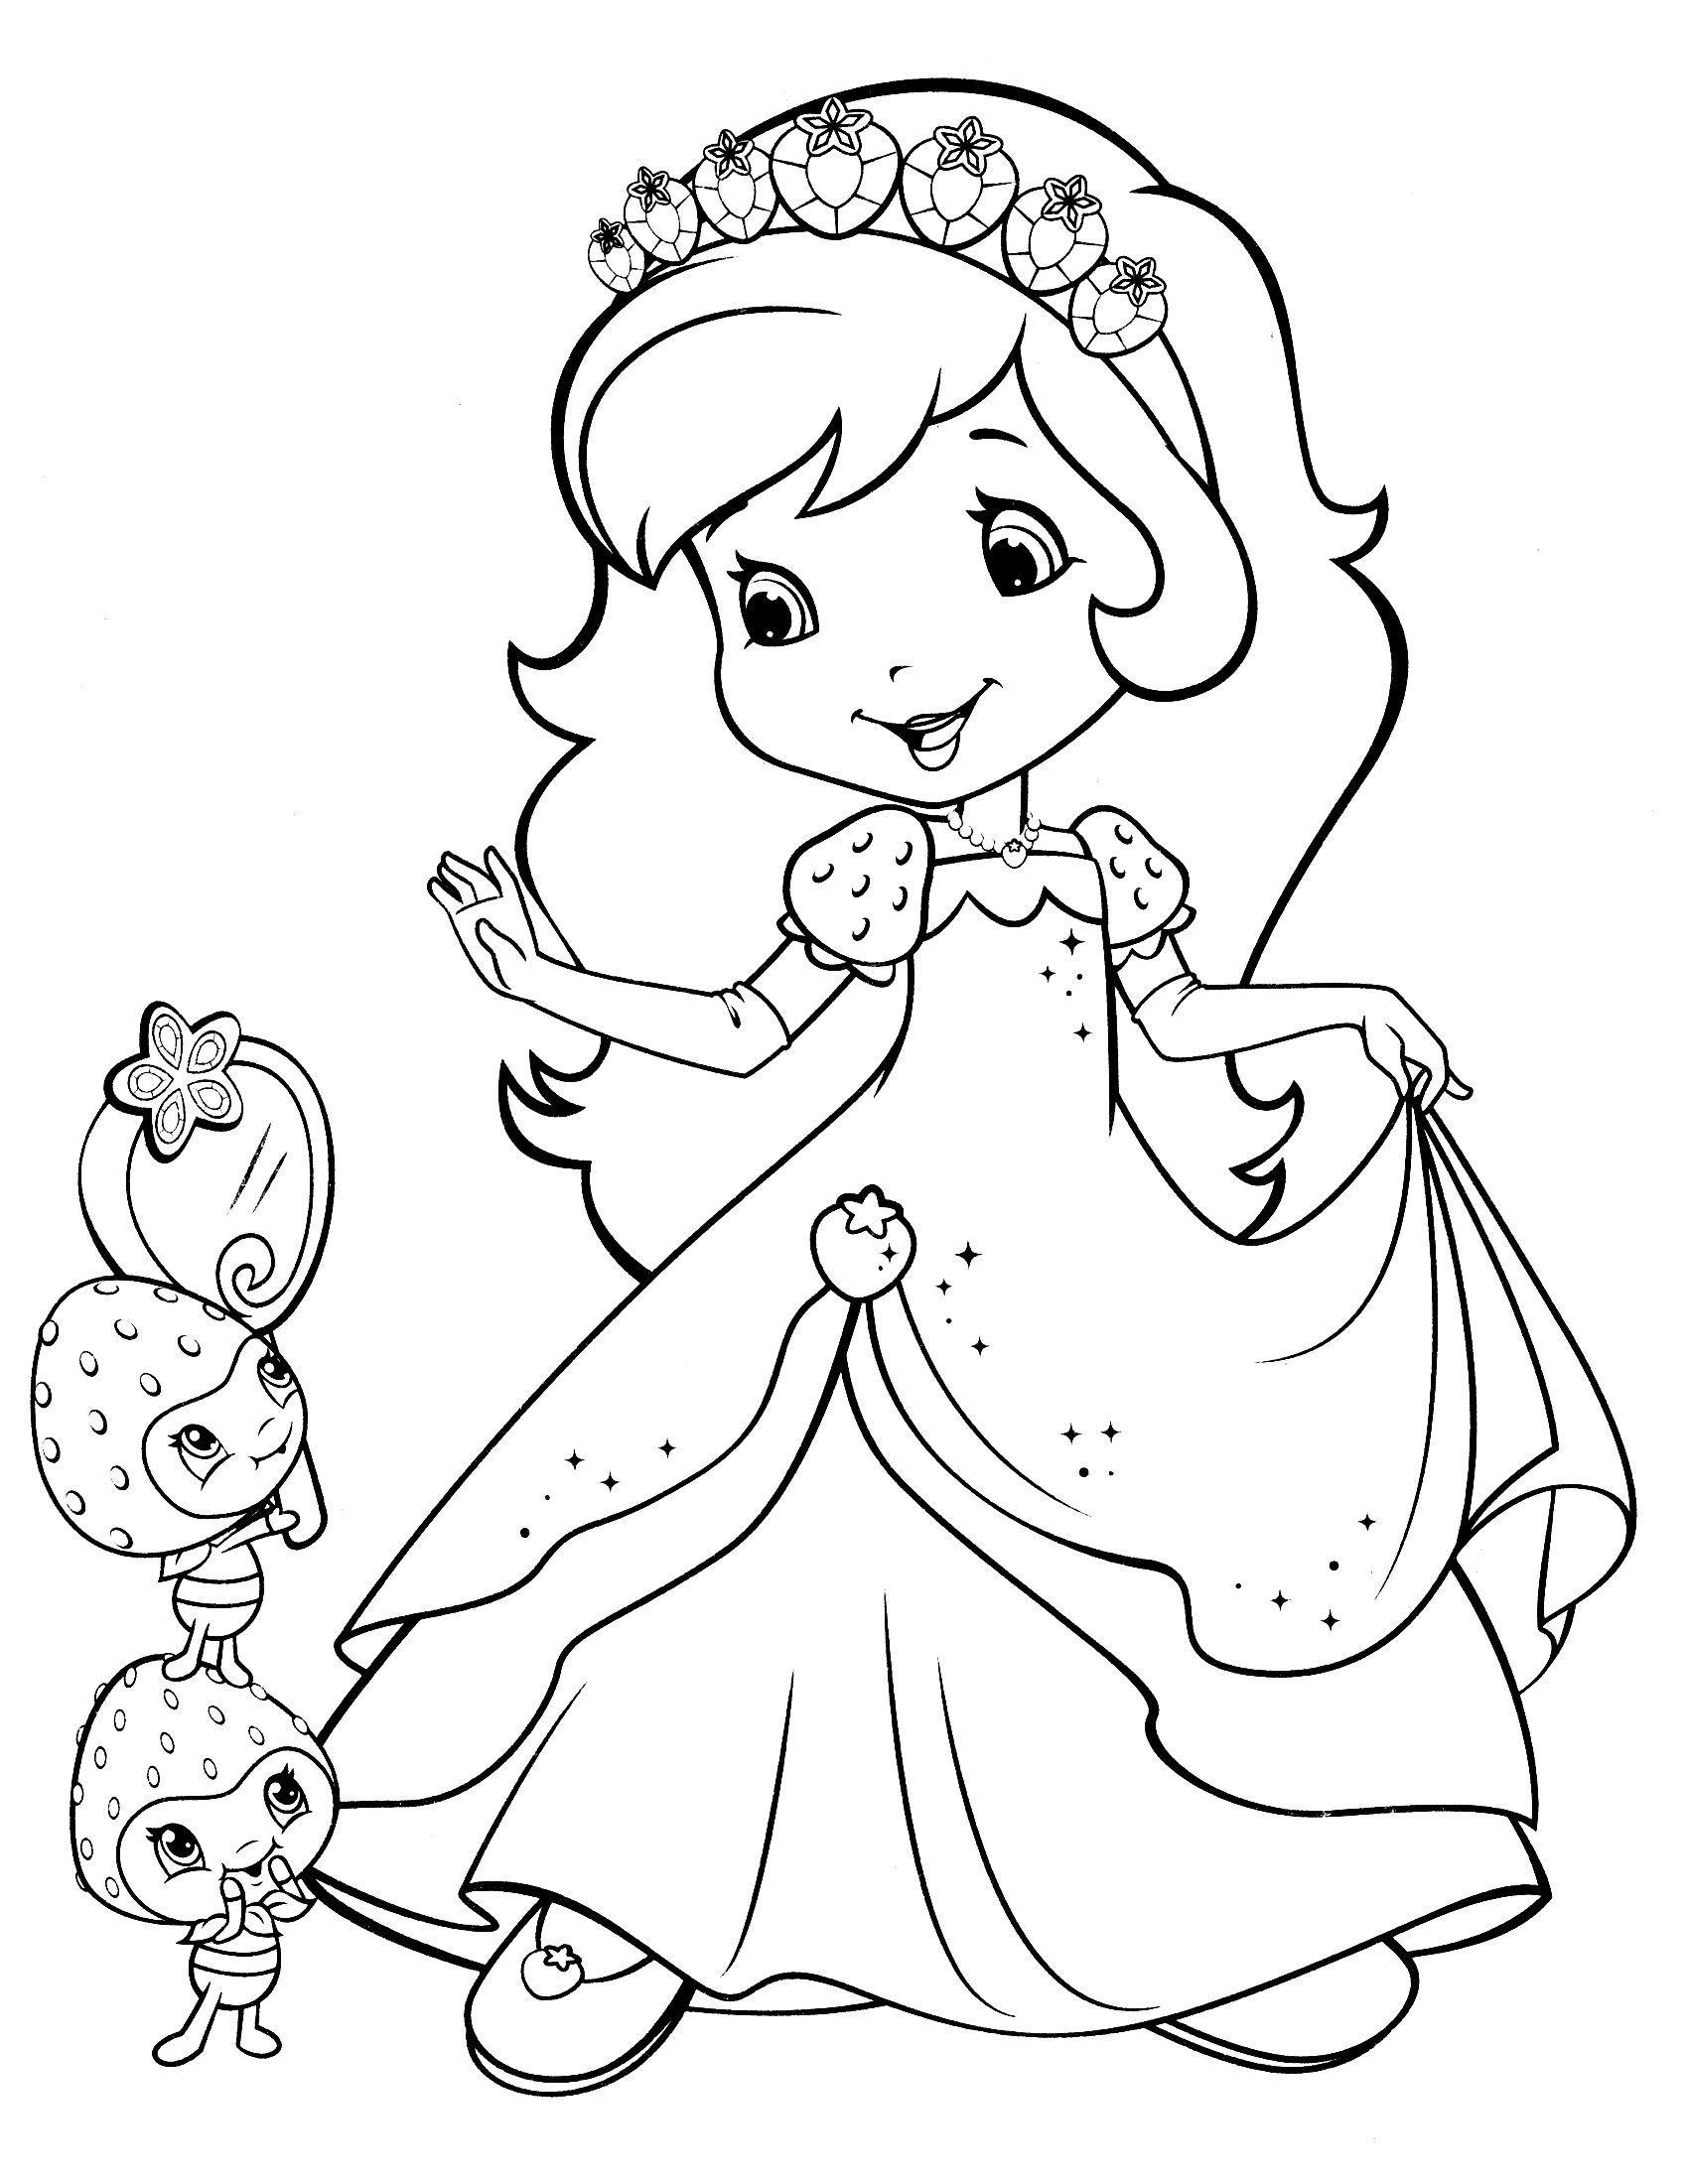 strawberry shortcake coloring page | Amanda\'s board | Pinterest ...